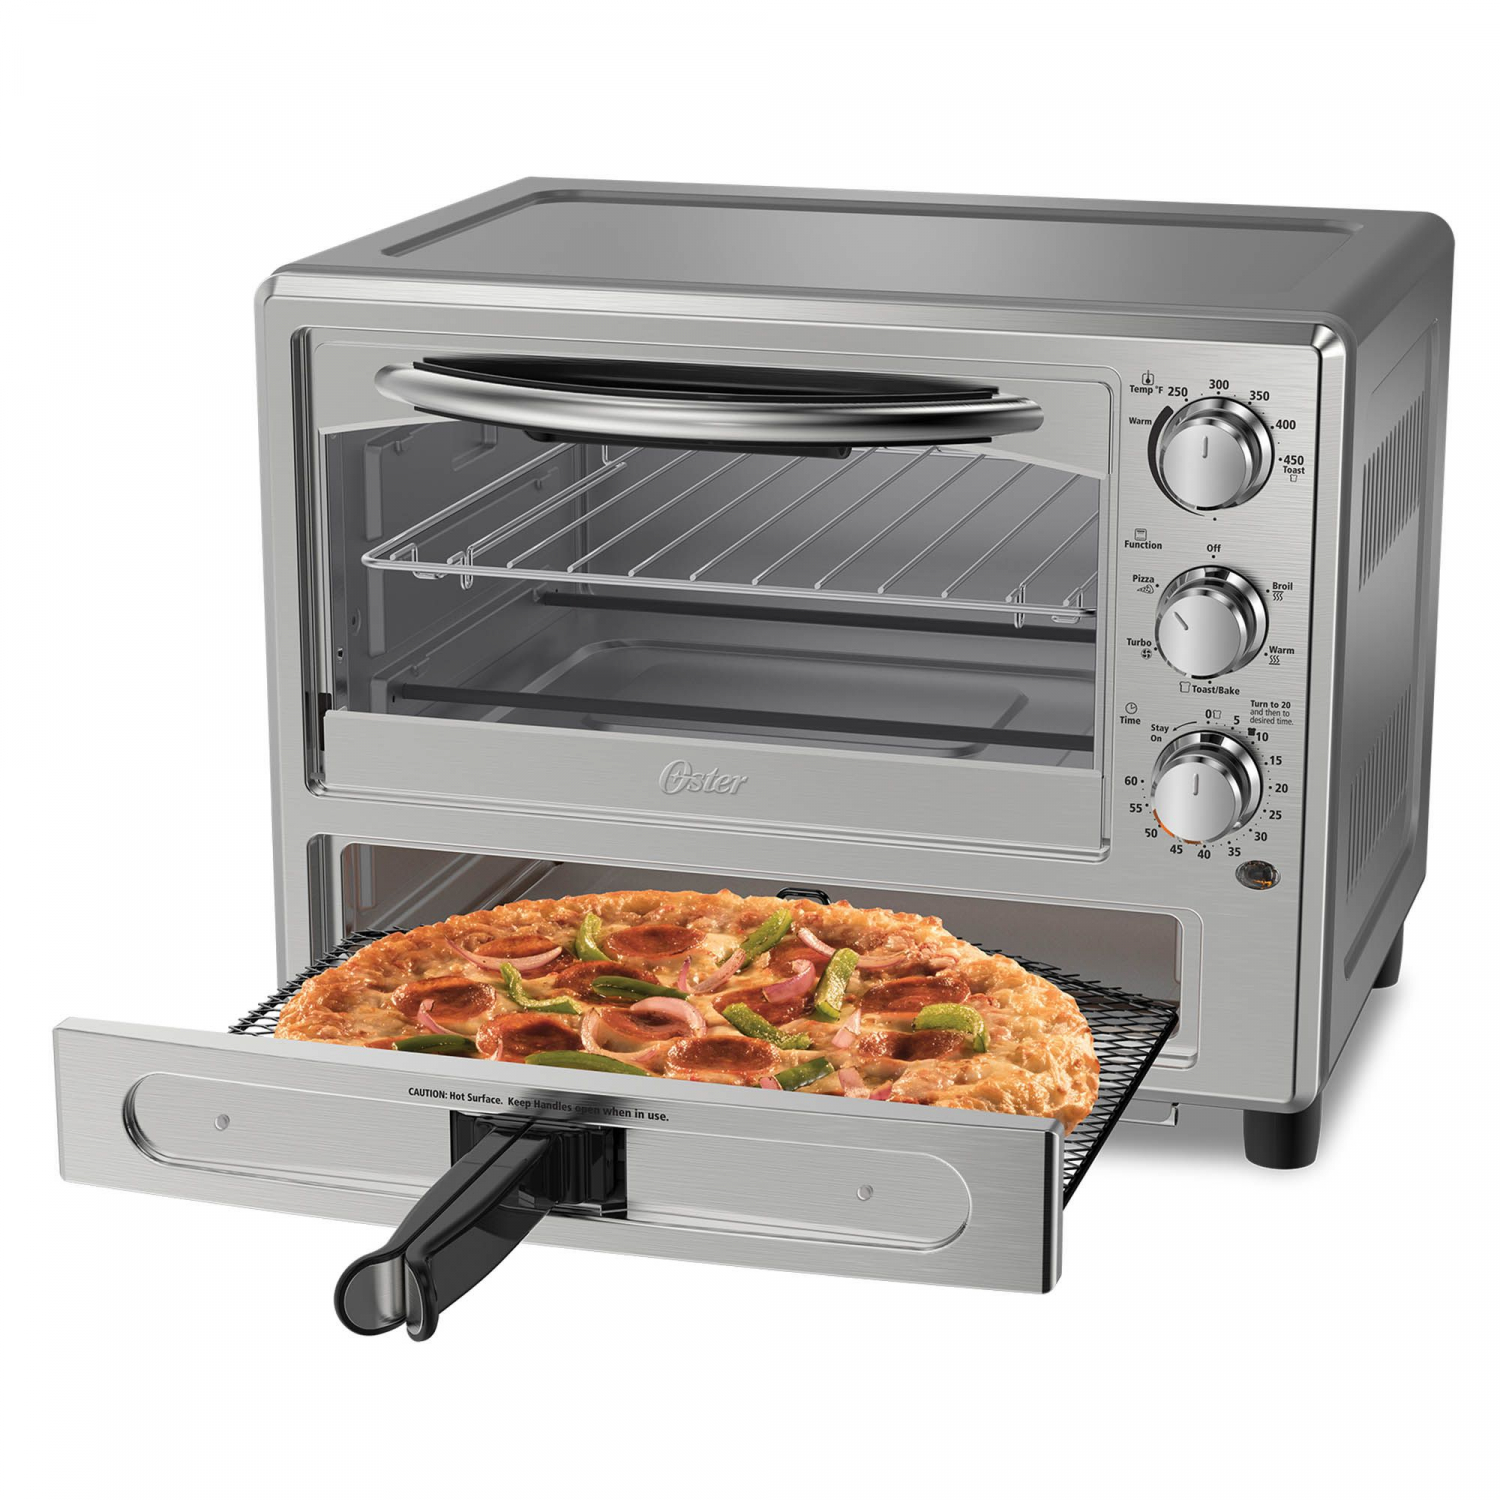 Convection Toaster Oven with Stainless Steel Finish Family-Size Pizza Cook